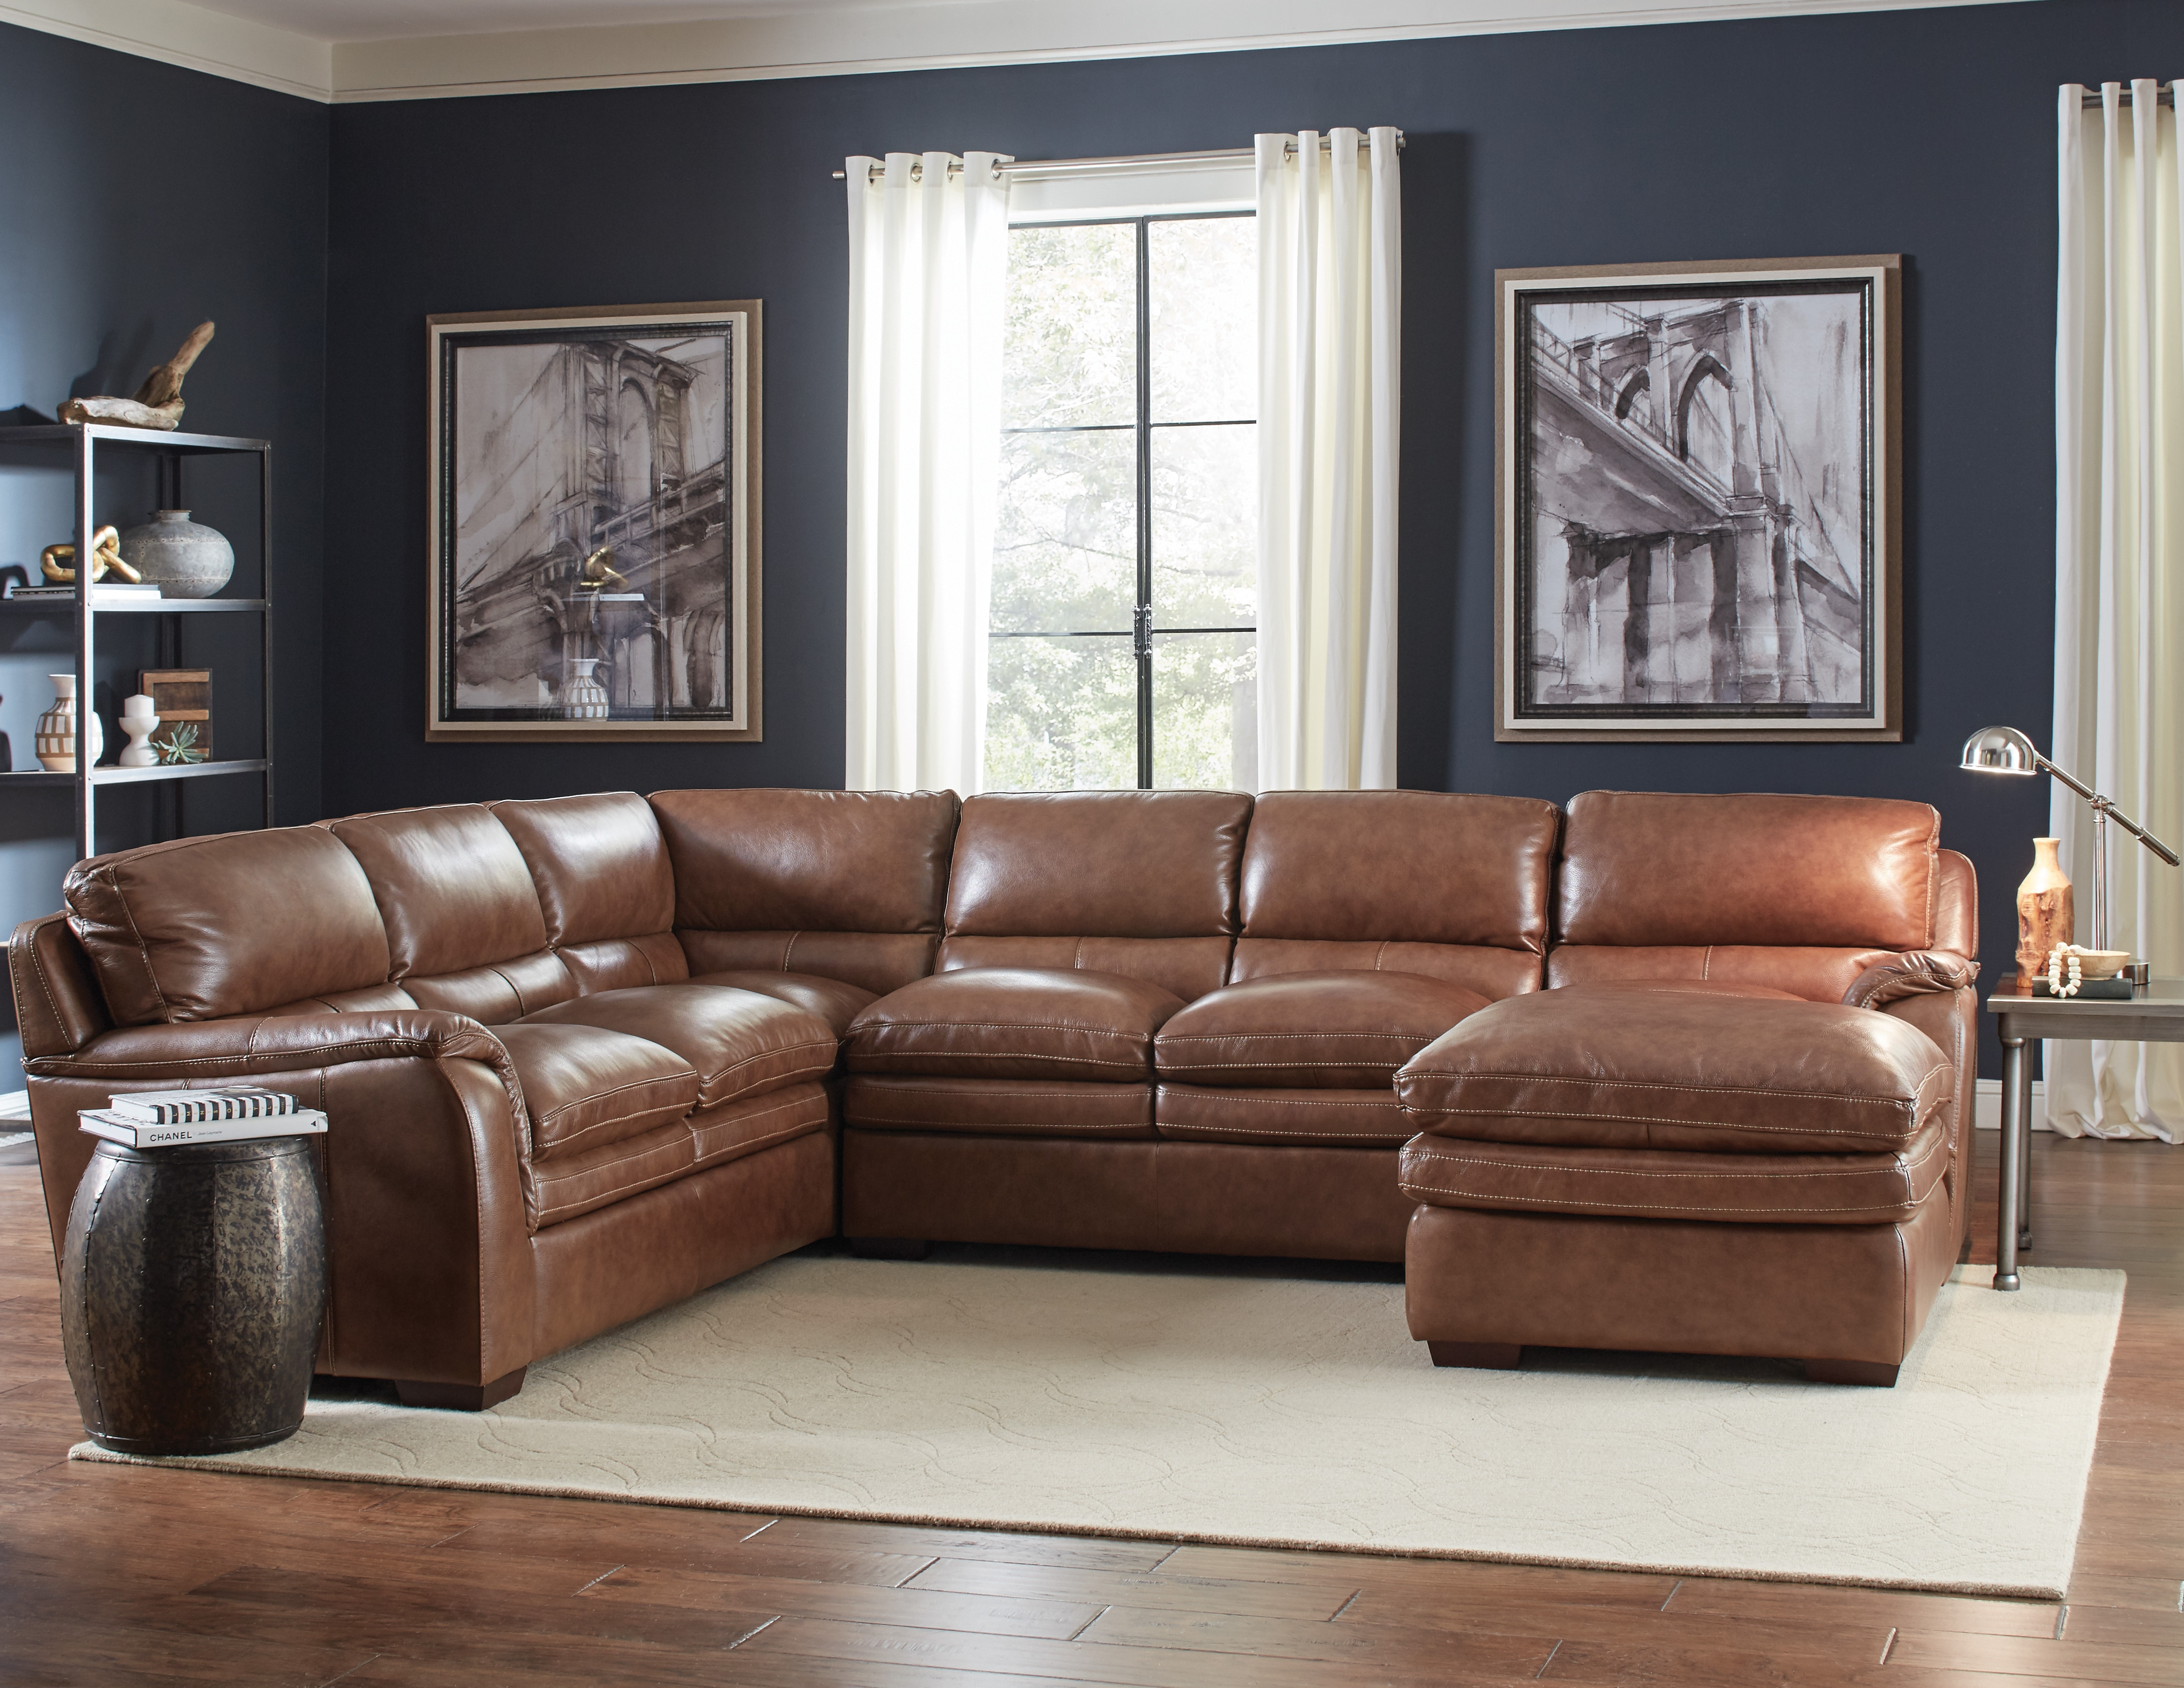 Merdian 3 pc Leather Sectional